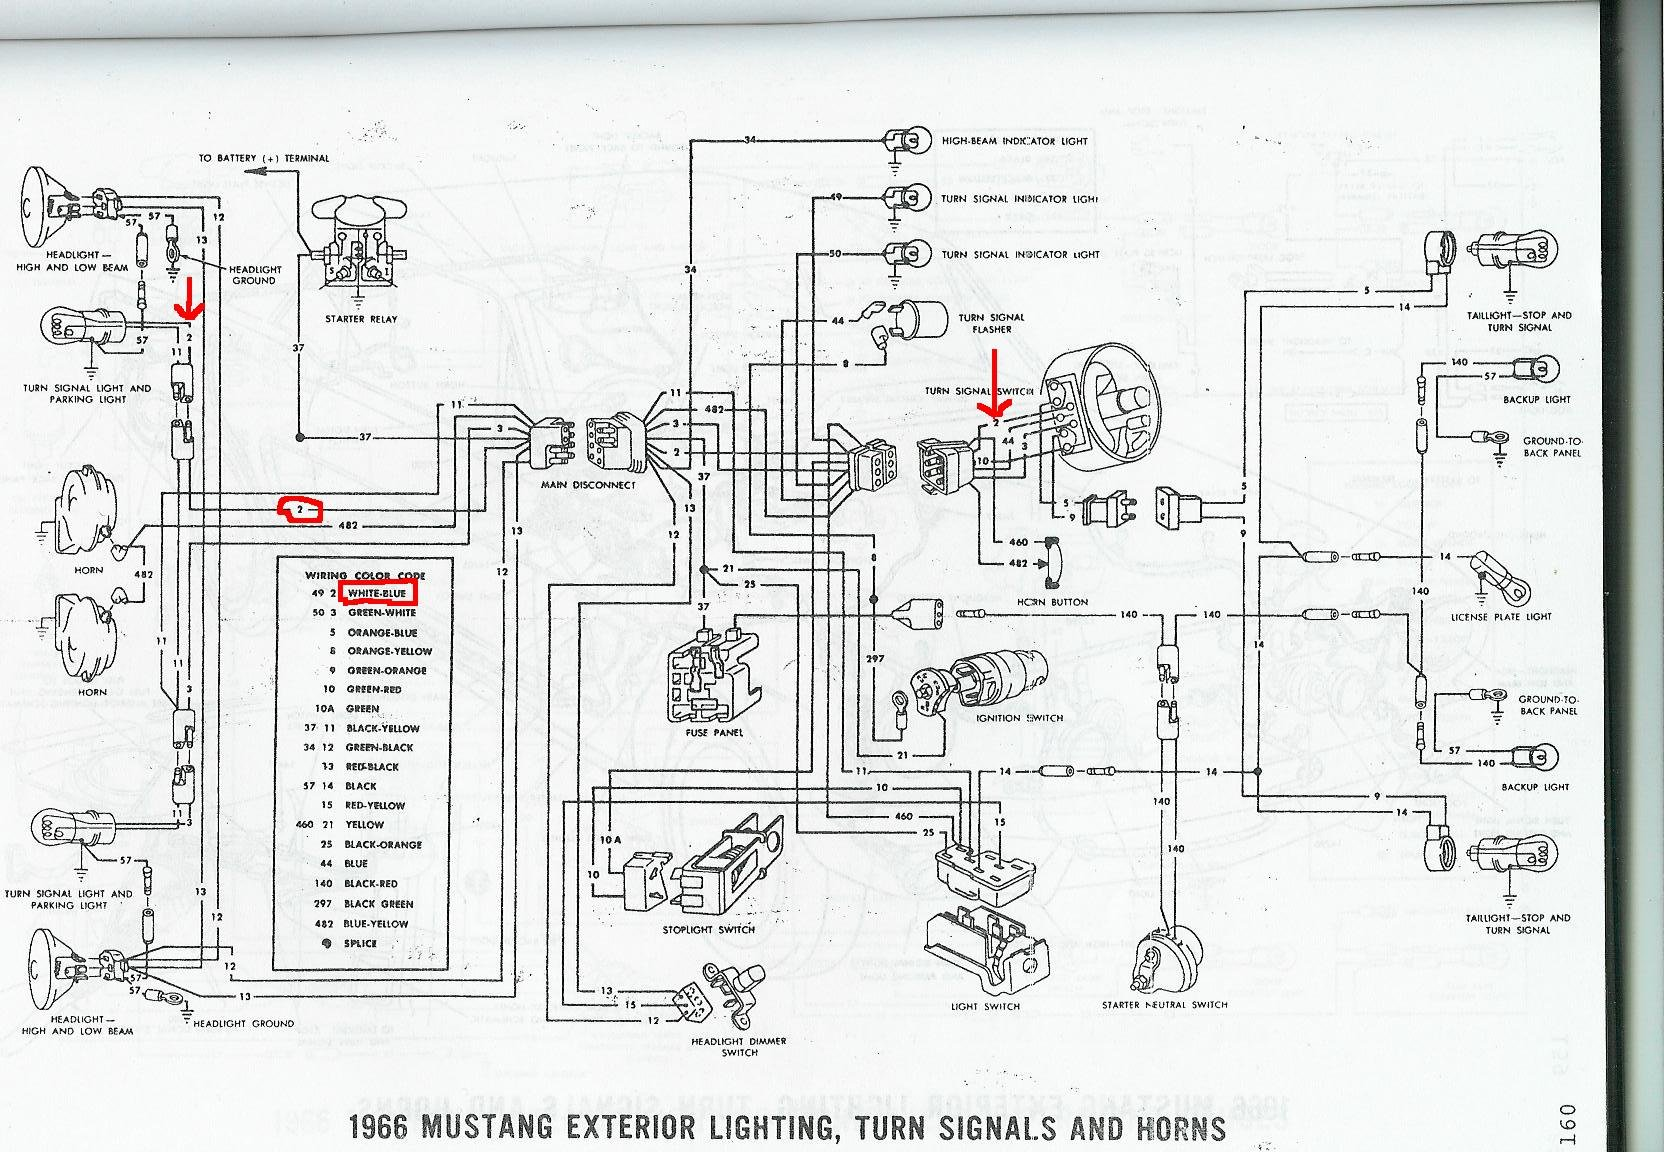 hight resolution of 1968 mustang turn signal switch diagram wiring schematic simple 1968 mustang electrical diagram 1968 mustang dash wiring diagram